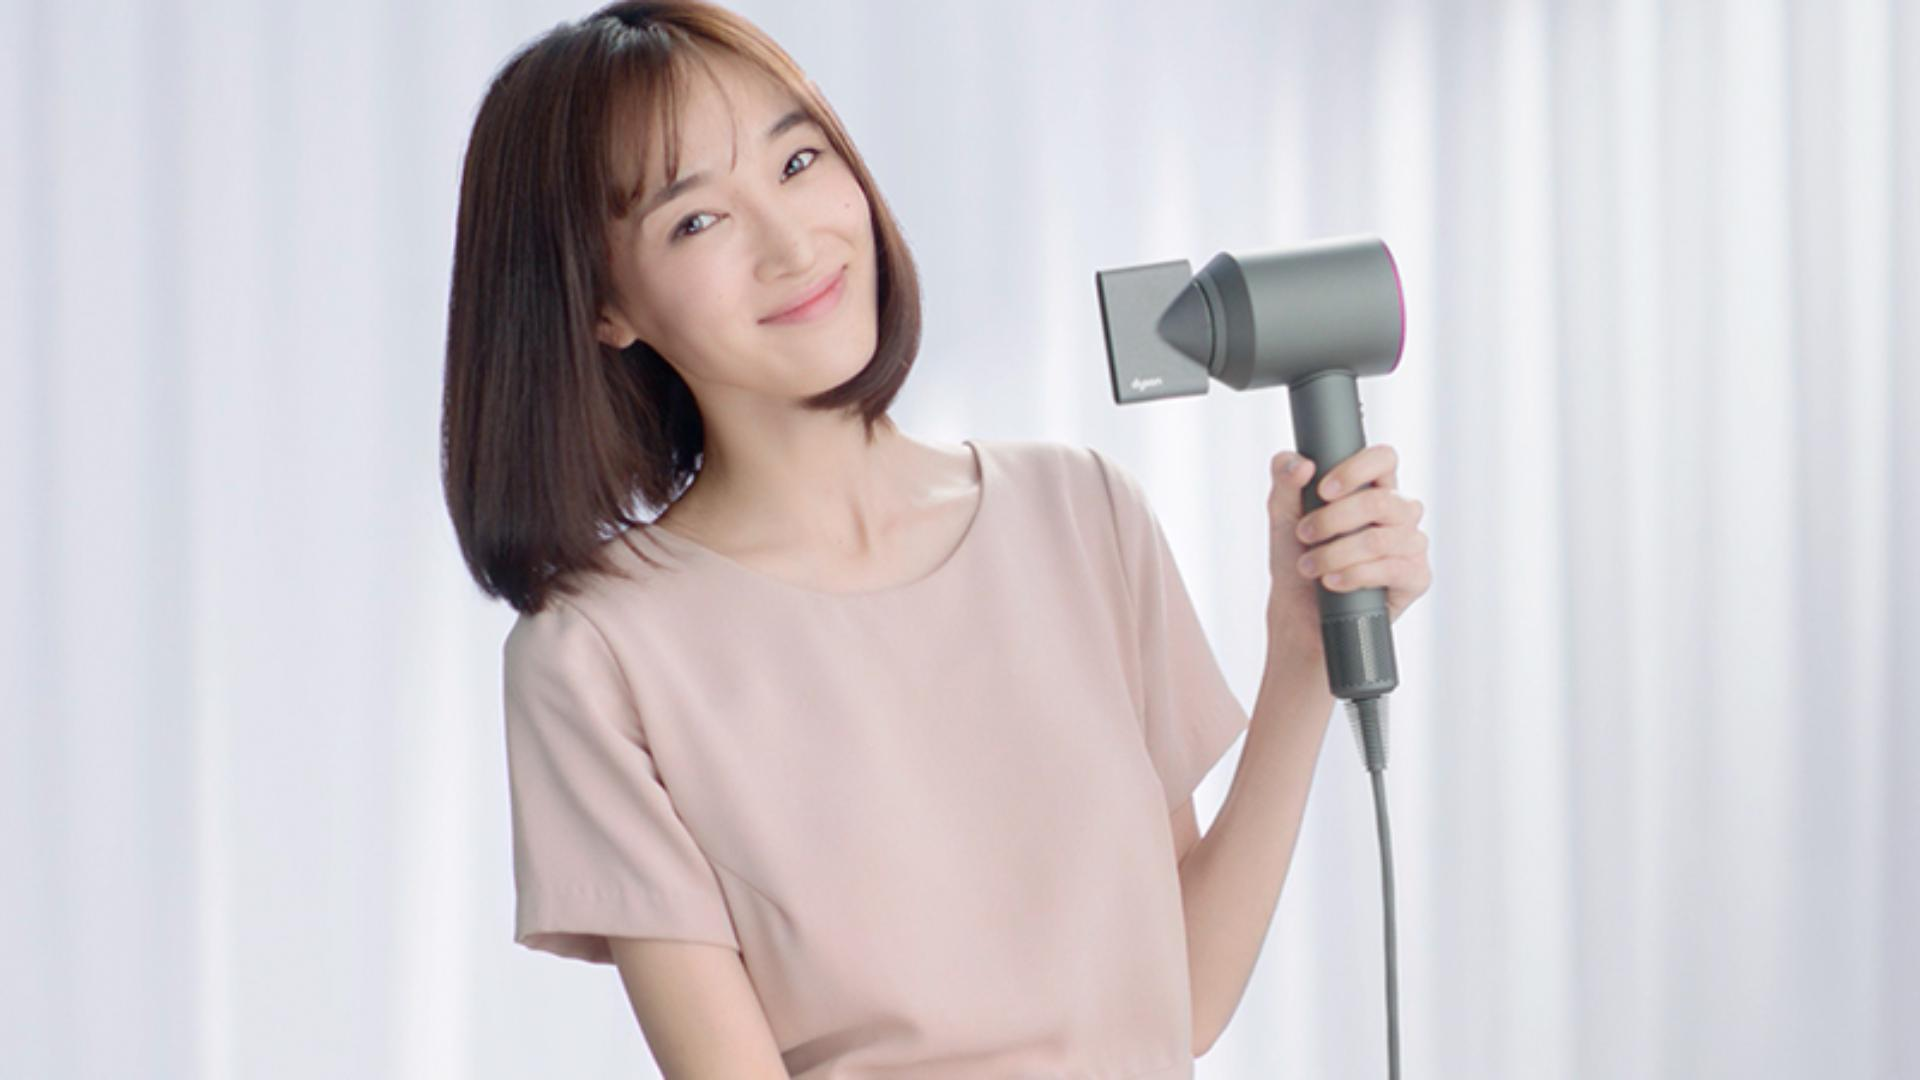 Video about how to use the Dyson Supersonic™ hair dryer Styling concentrator